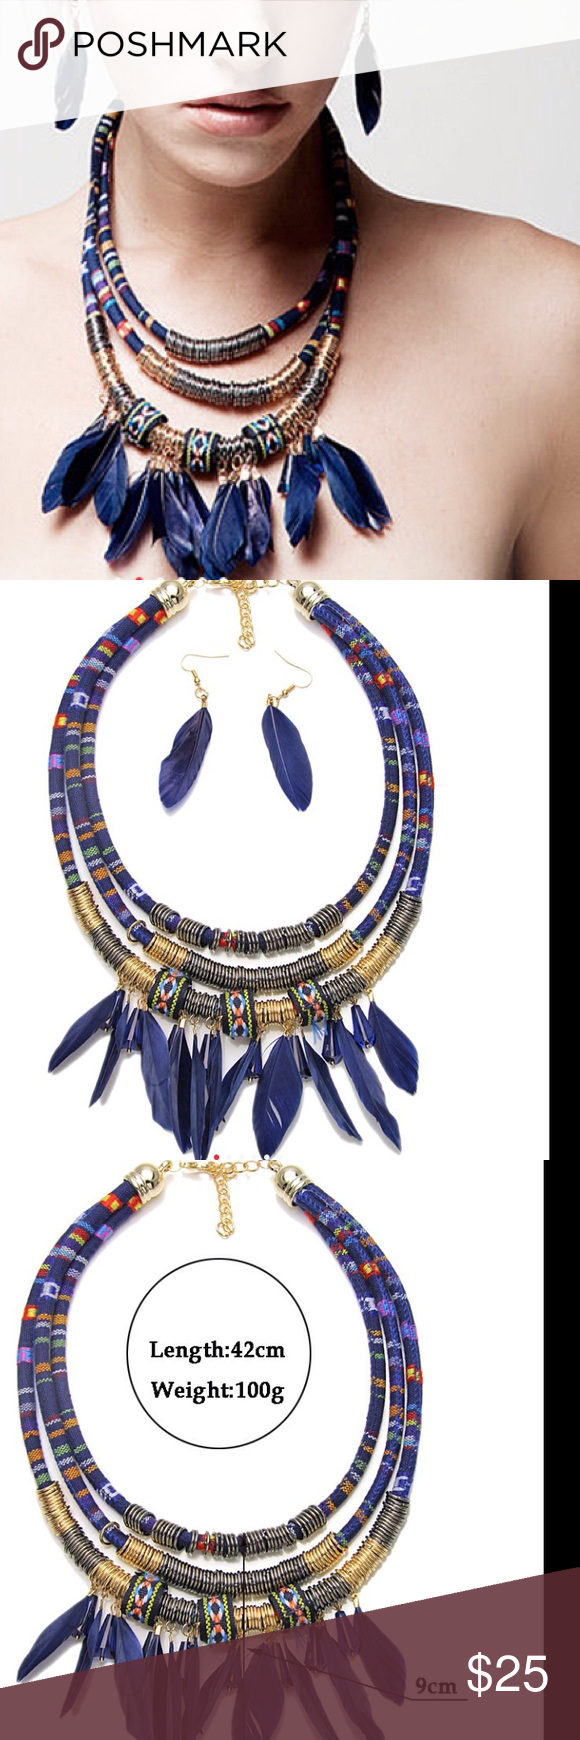 Bohemiah feather necklace set metal spring feather necklaces